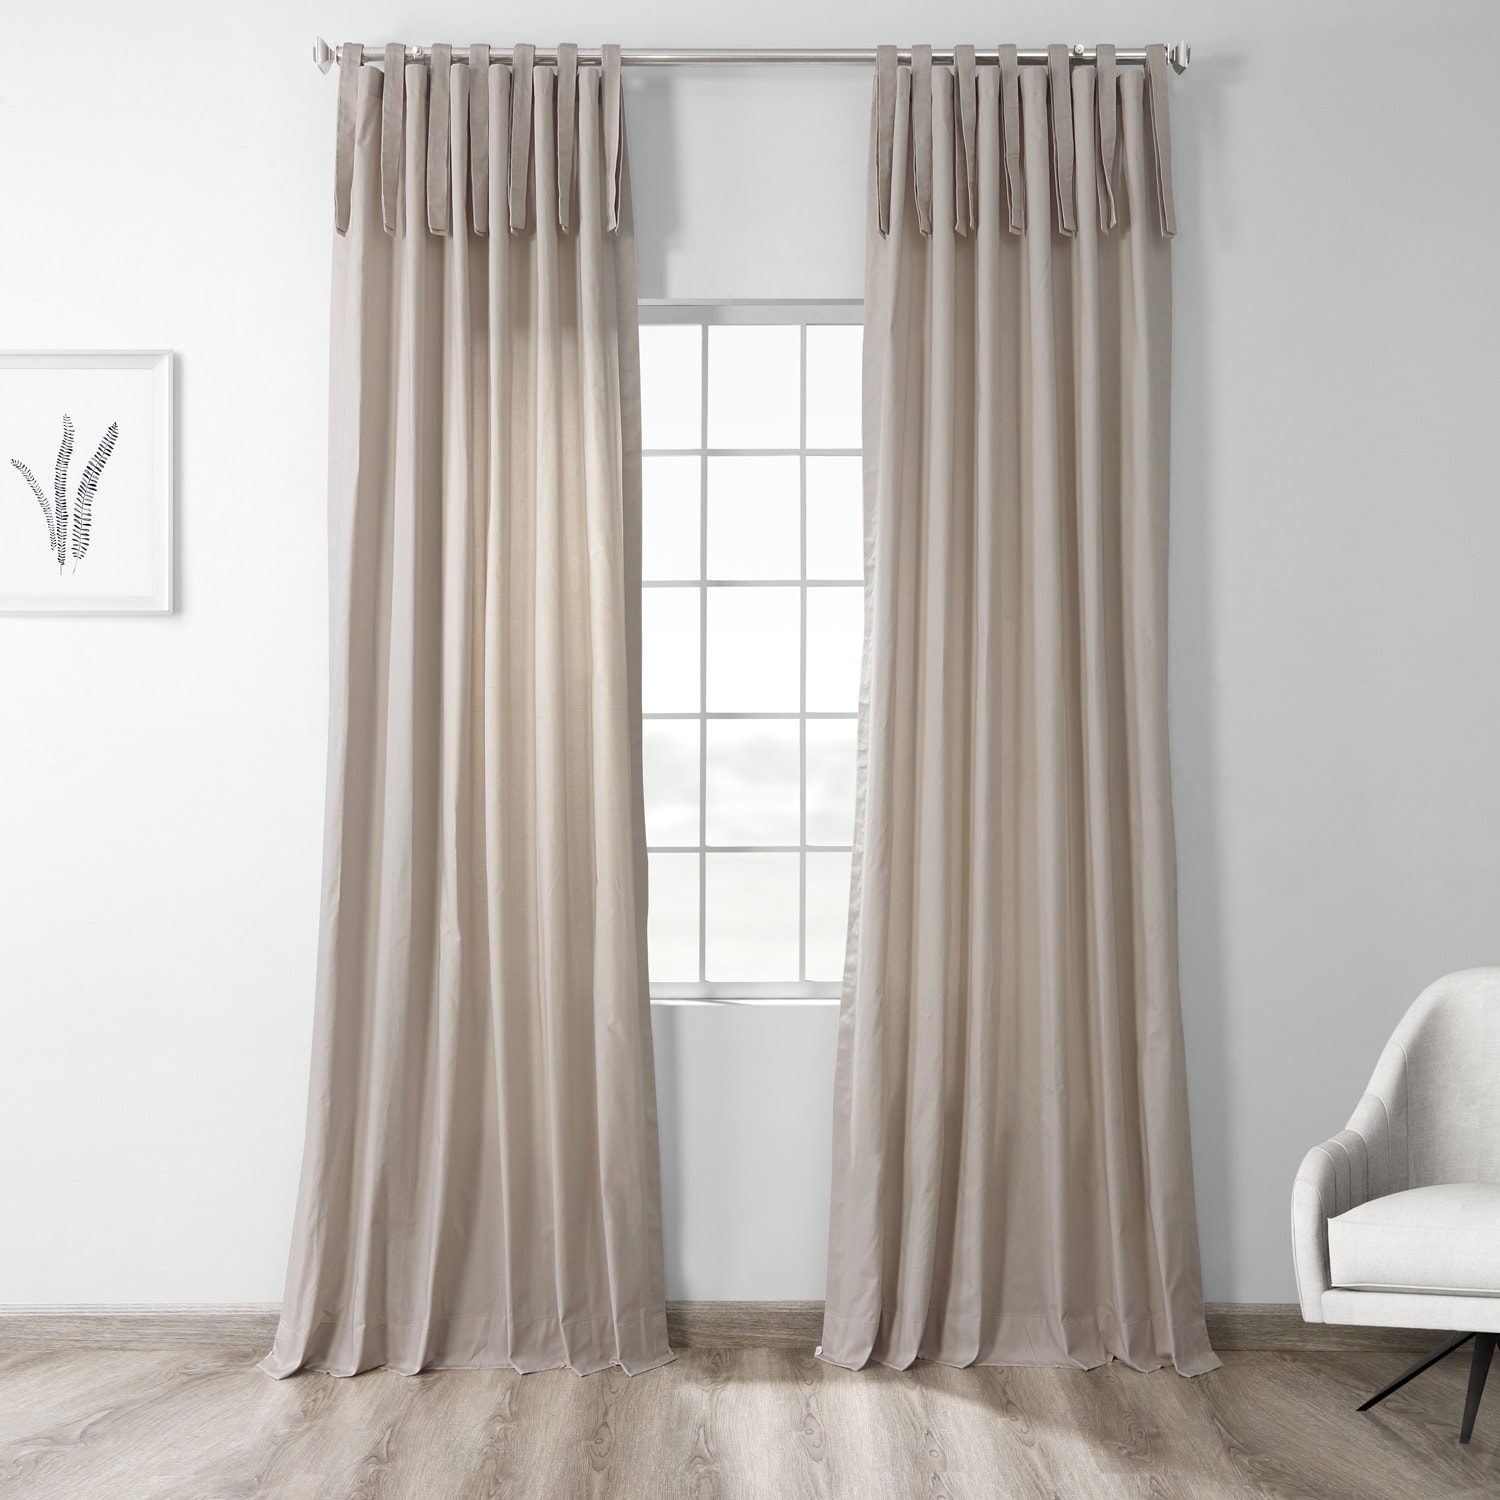 Draping Curtains Hazelwood Beige Solid Cotton Tie Top Curtain